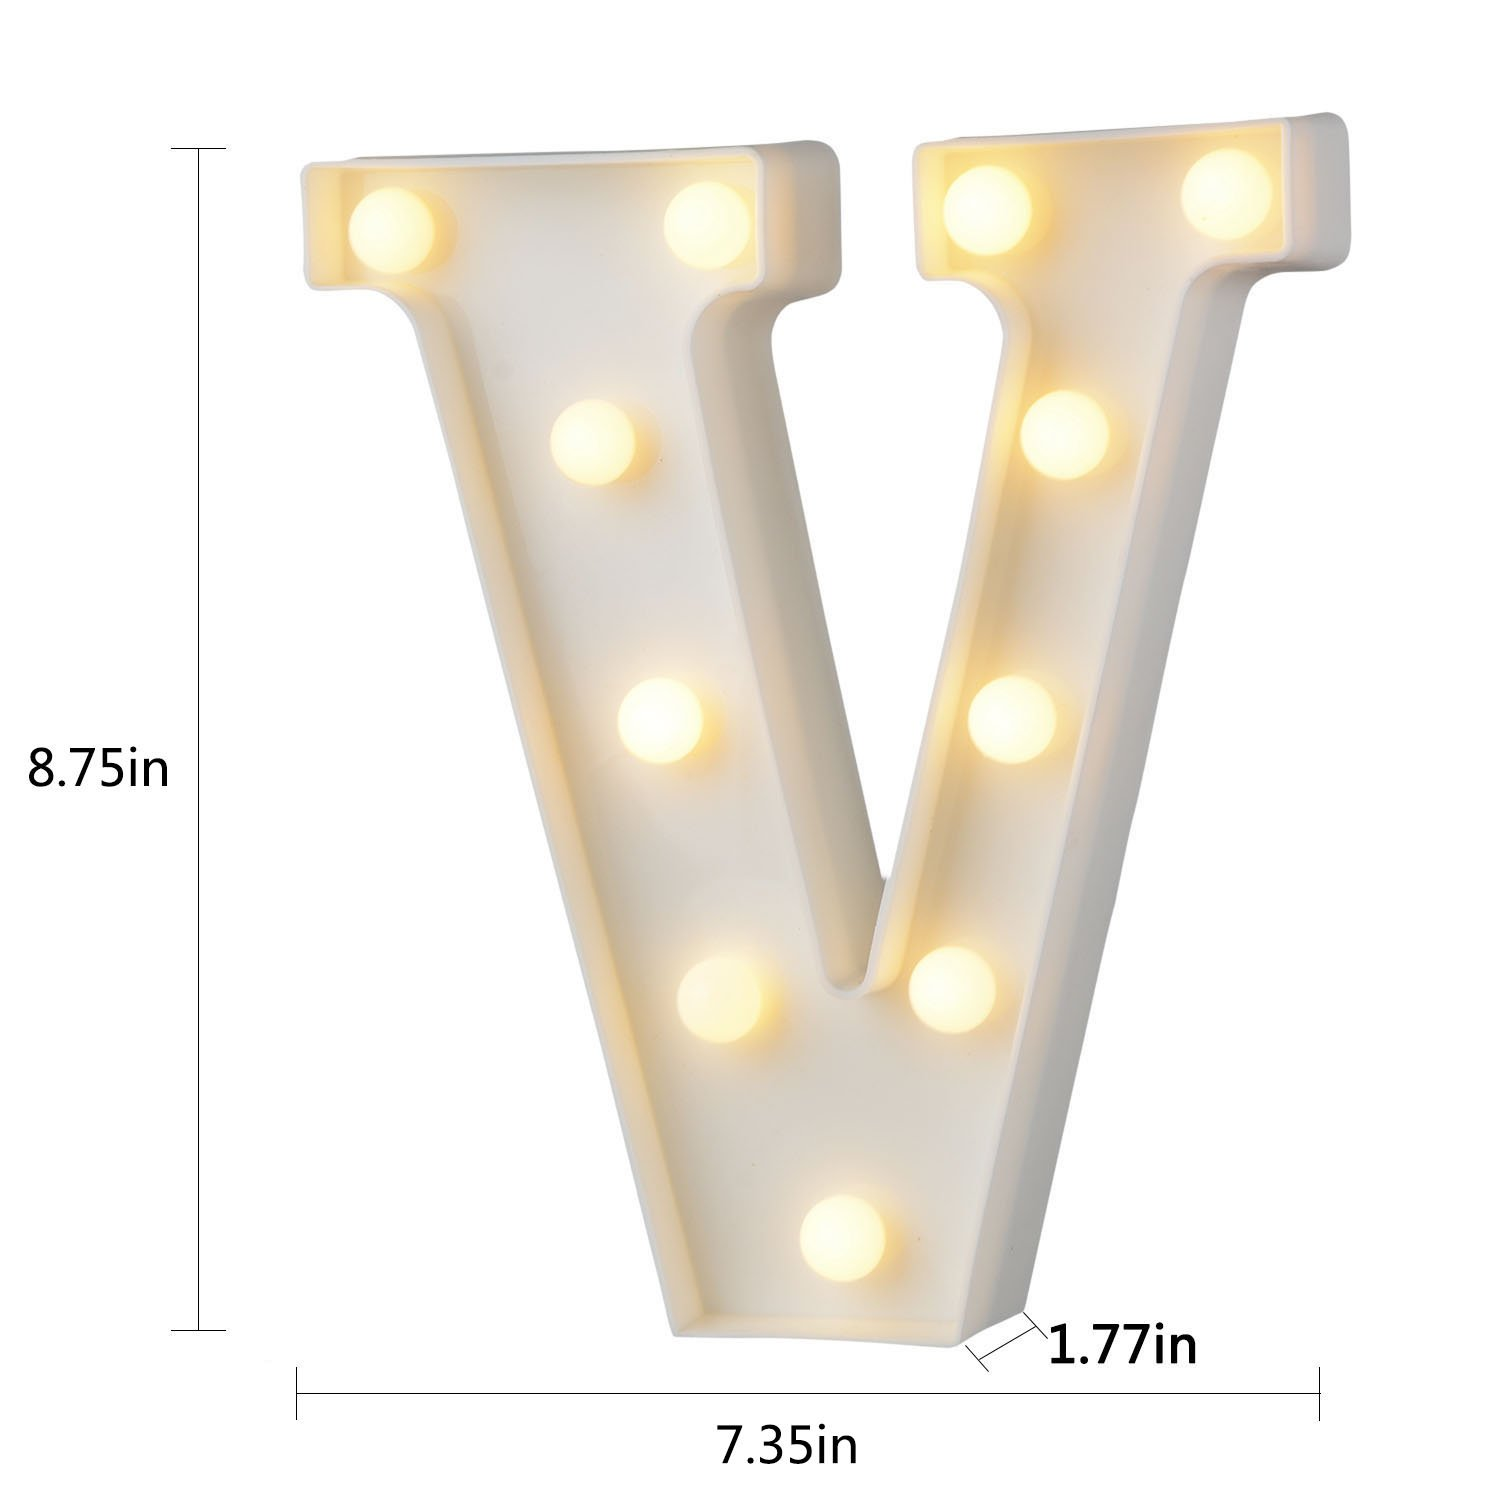 Led Letters Lights Alphabet Marquee Decoration Light Up Sign Battery Operated for Party Wedding Receptions Holiday Home /& Bath Bridal Bar Decor W